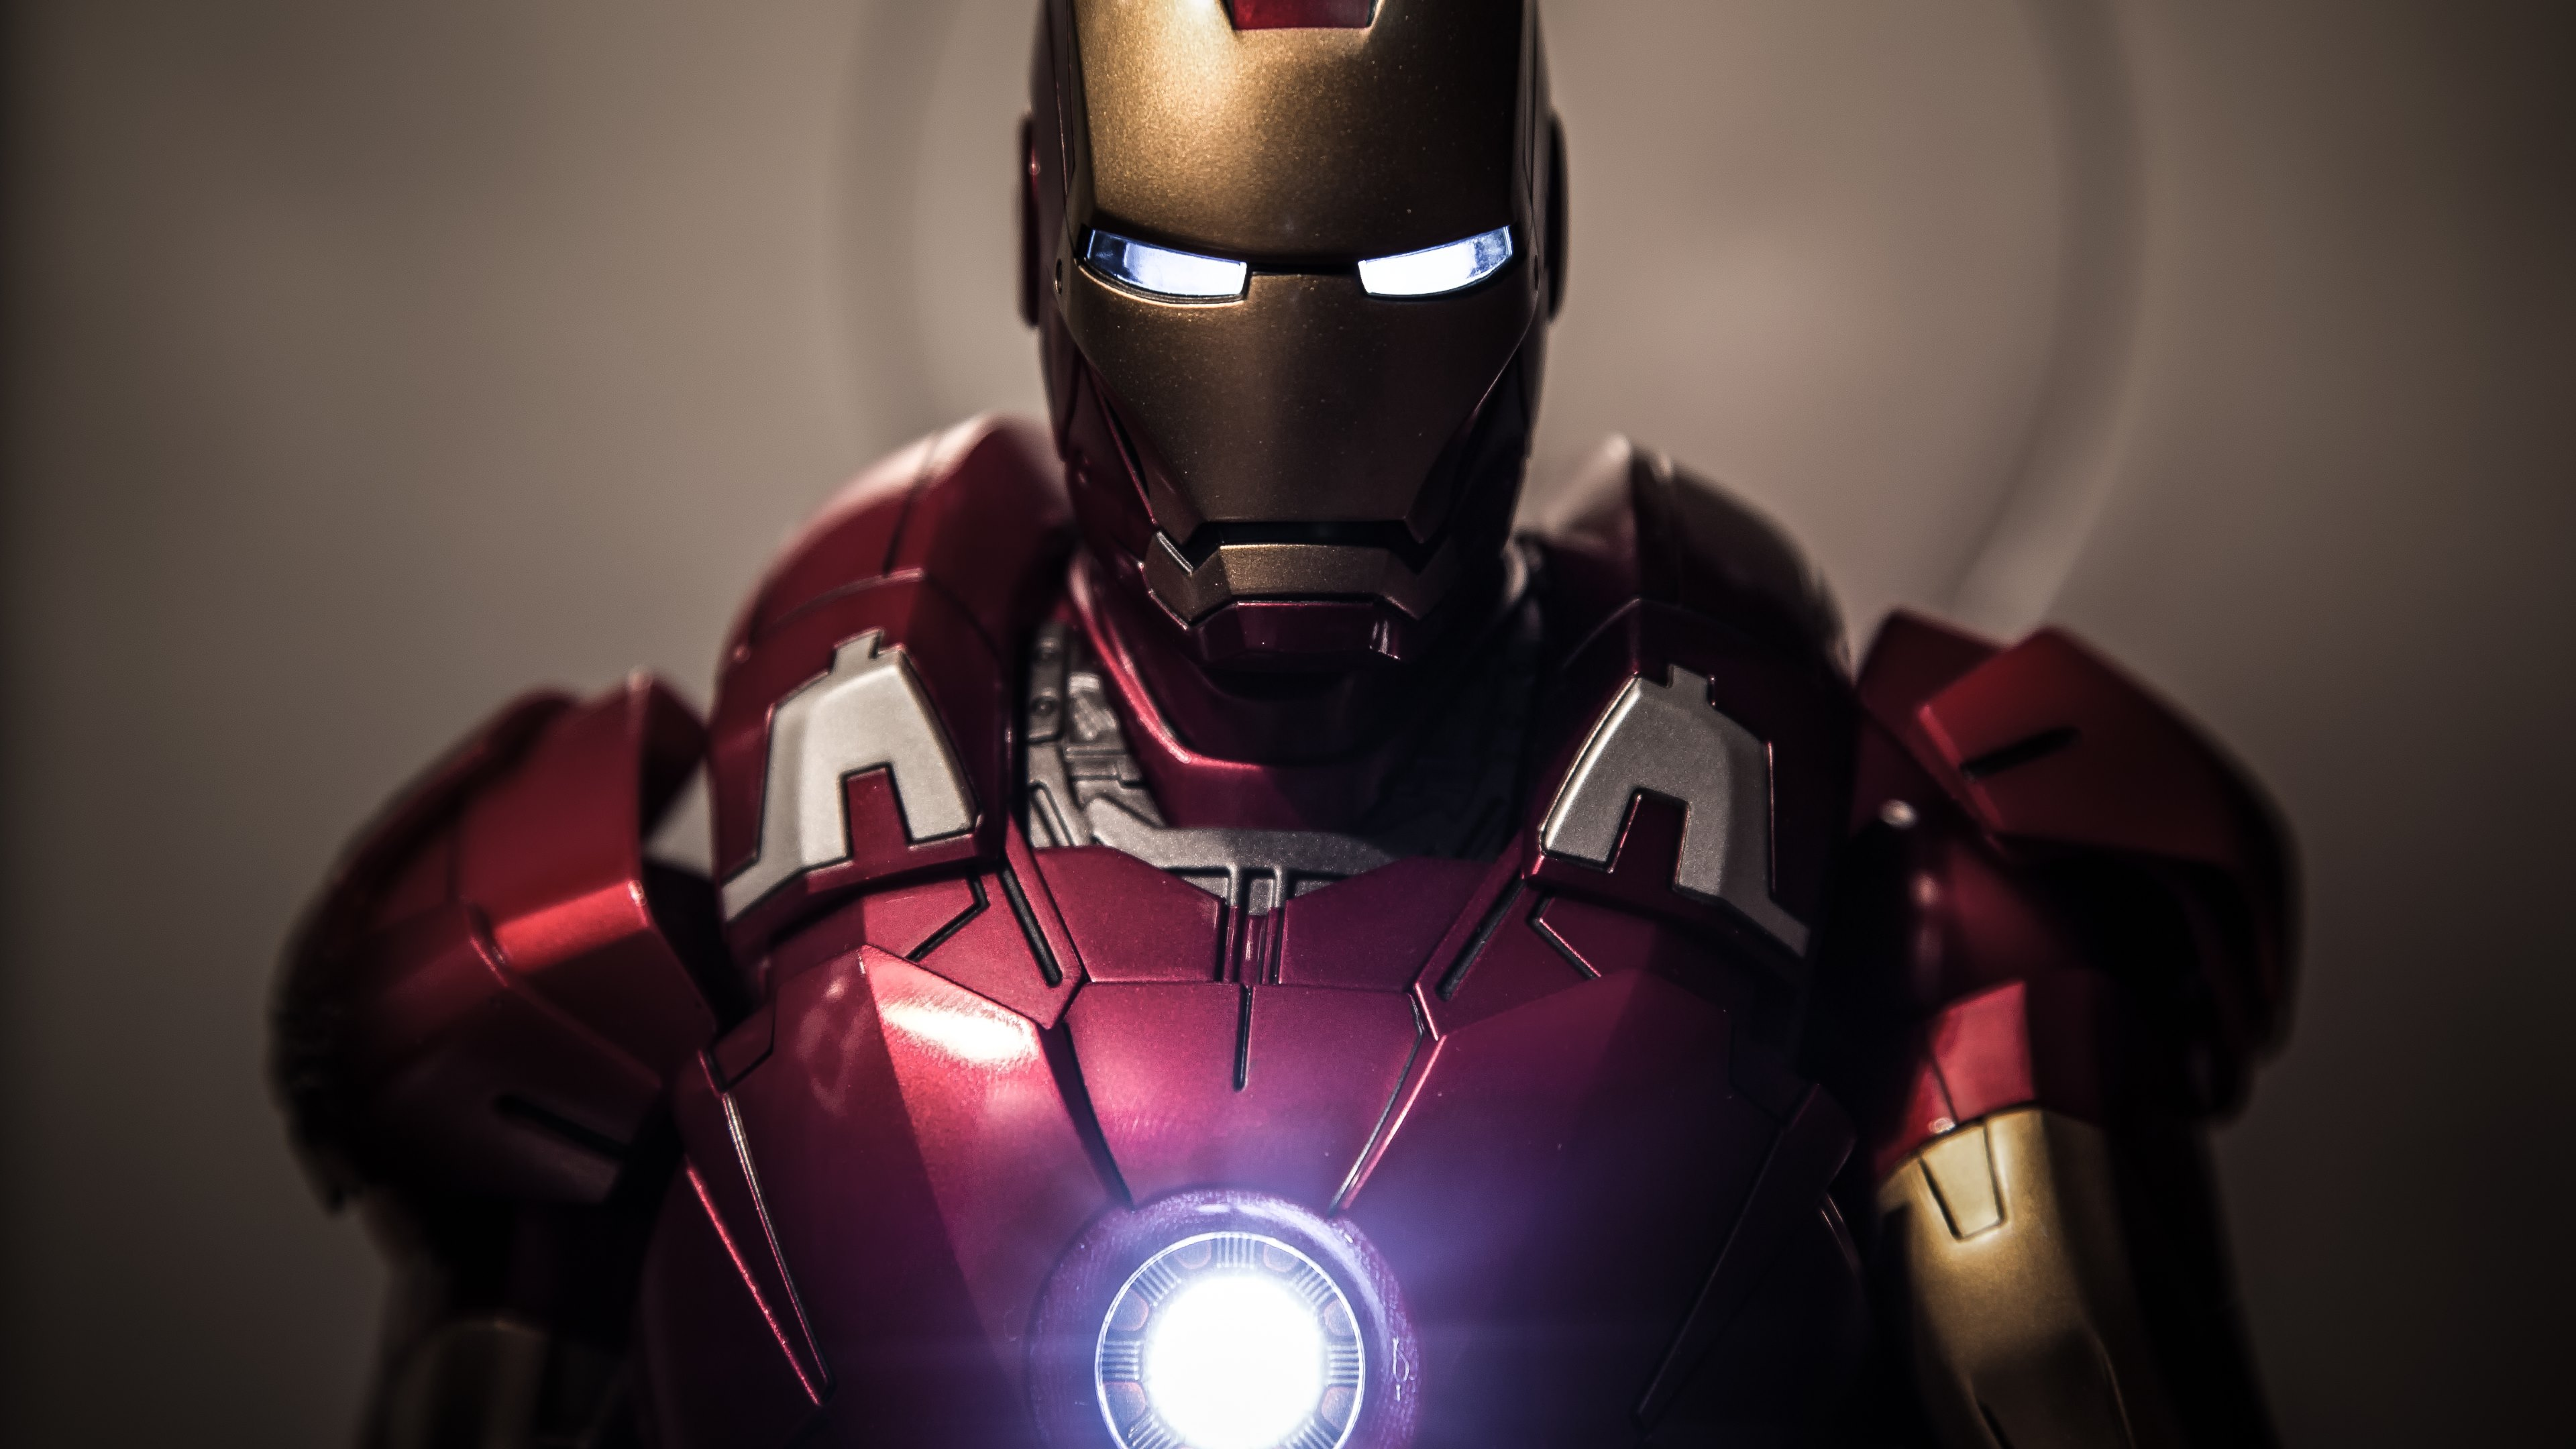 47 Iron Man Wallpaper 4k On Wallpapersafari